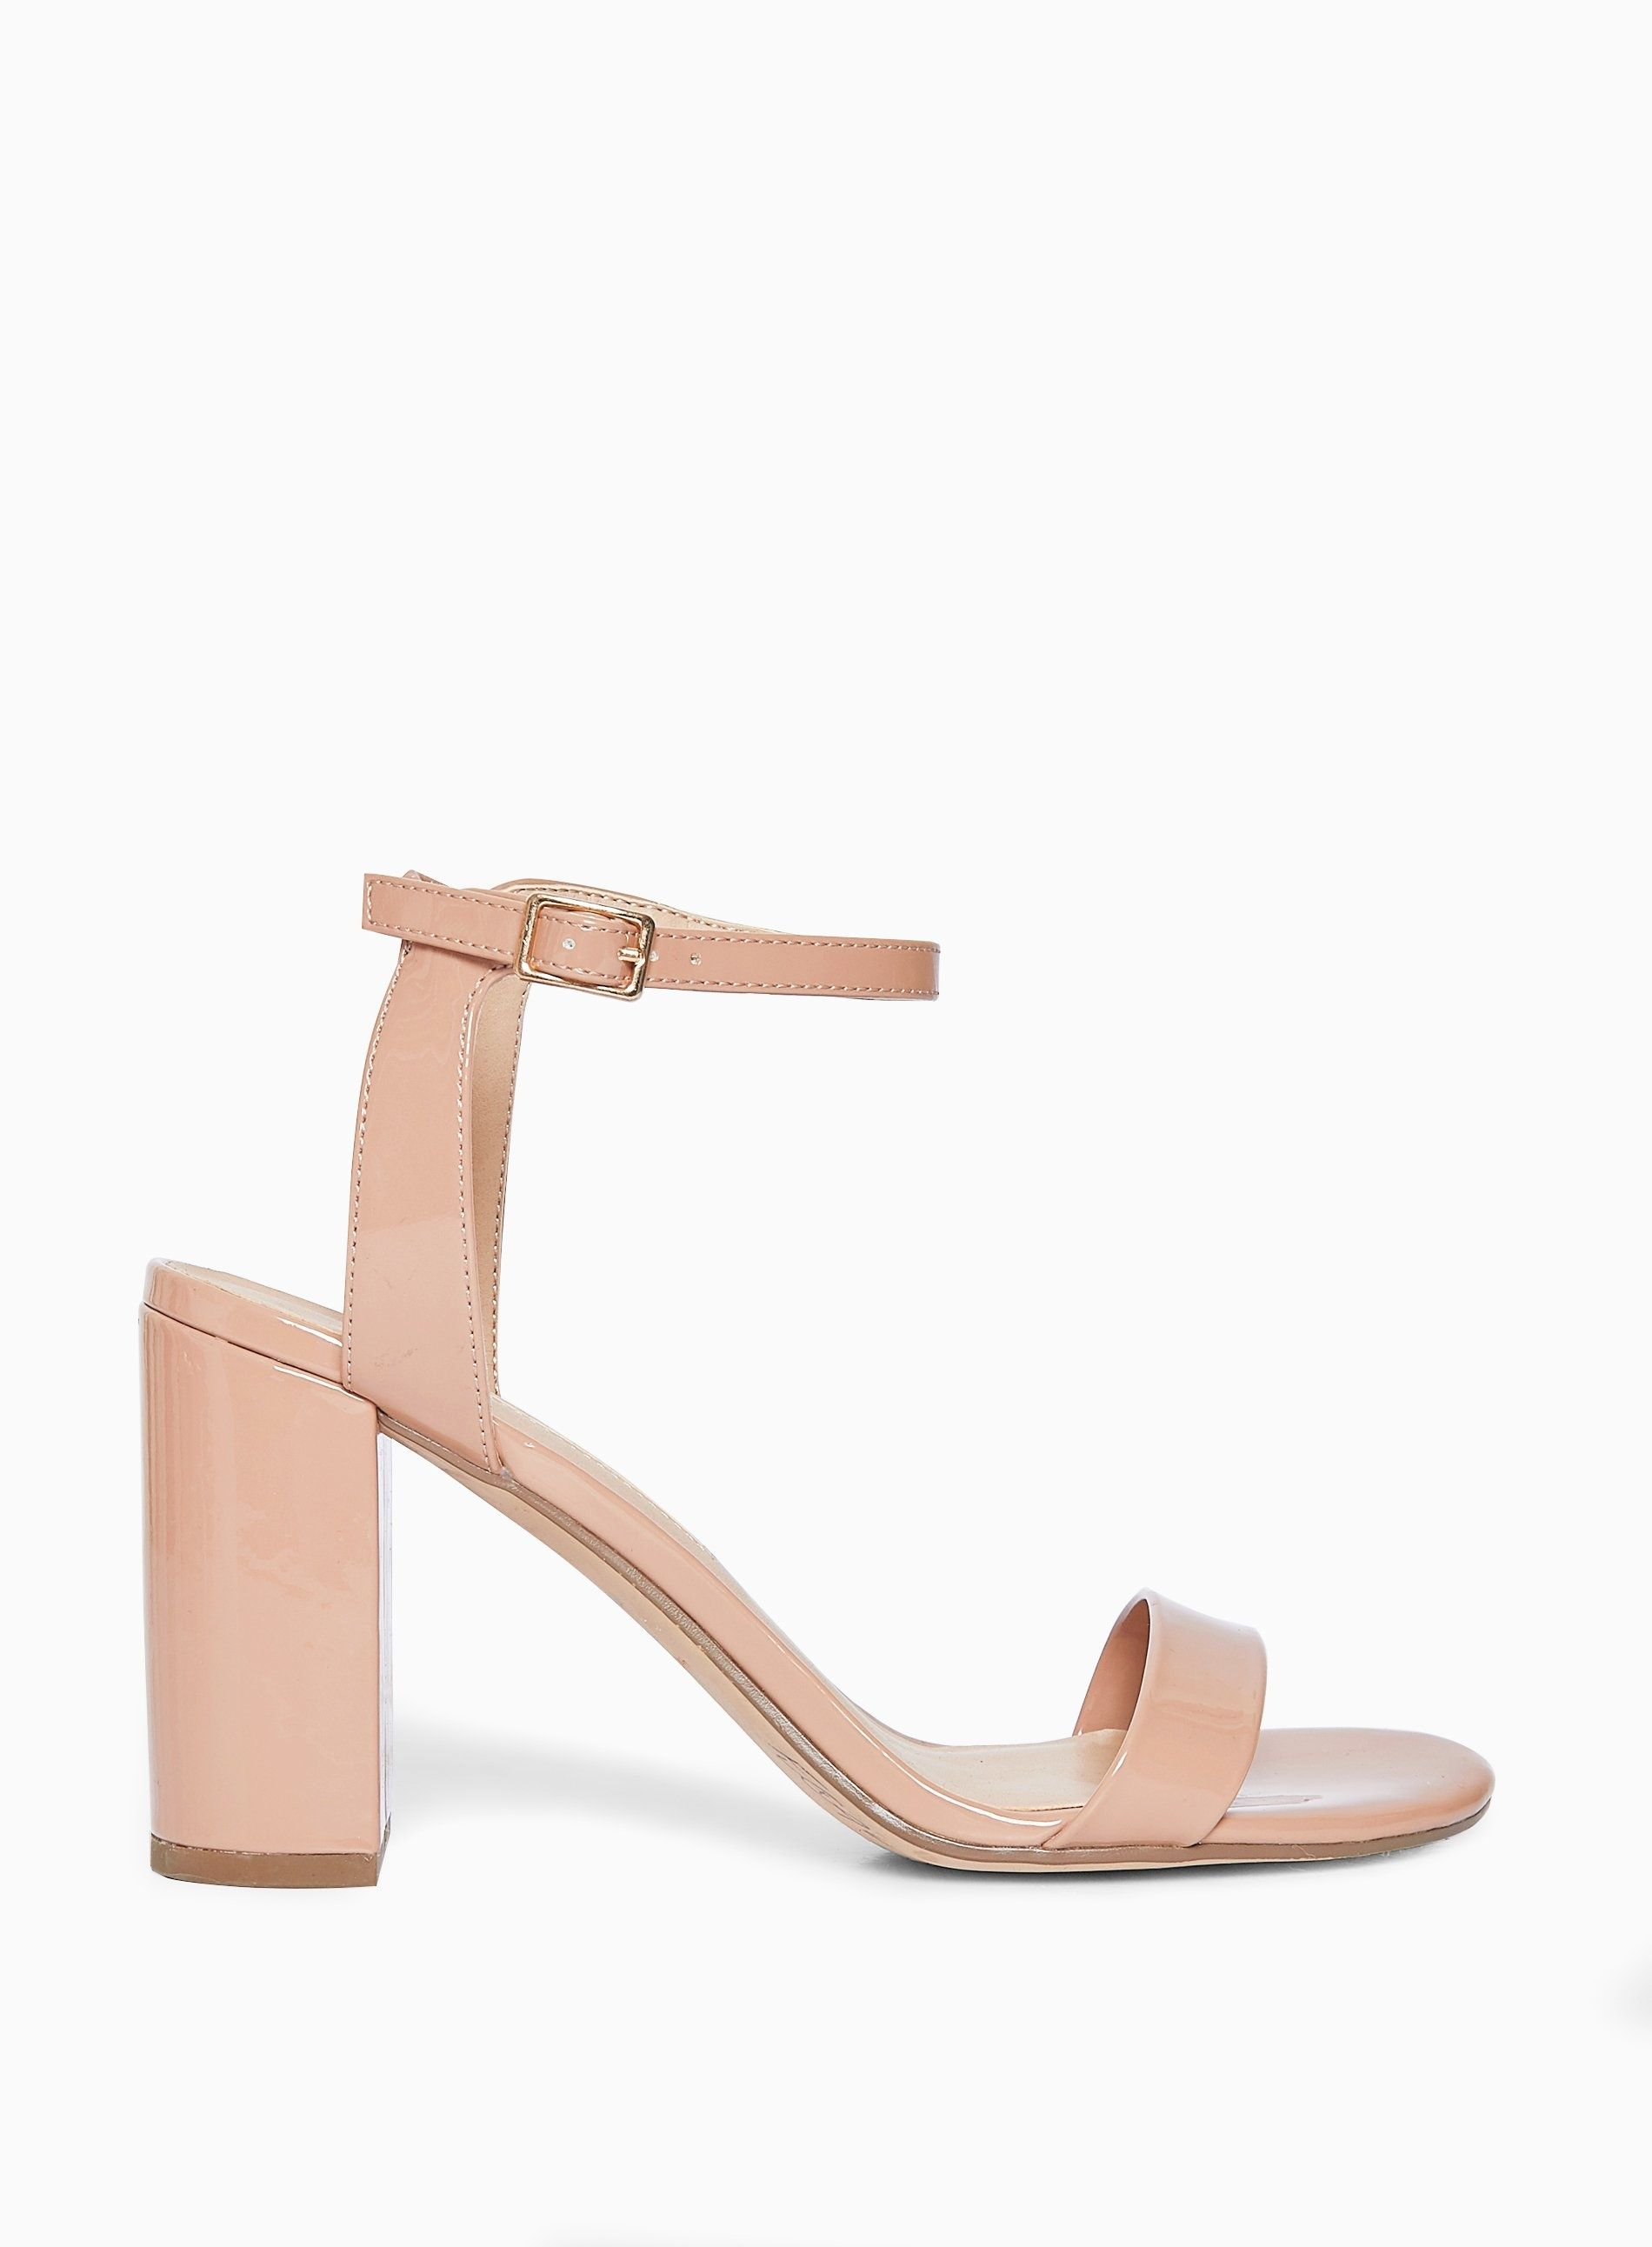 Dorothy Perkins Womens Beige Shimmer Heeled Sandals Strappy Open Toe Shoes